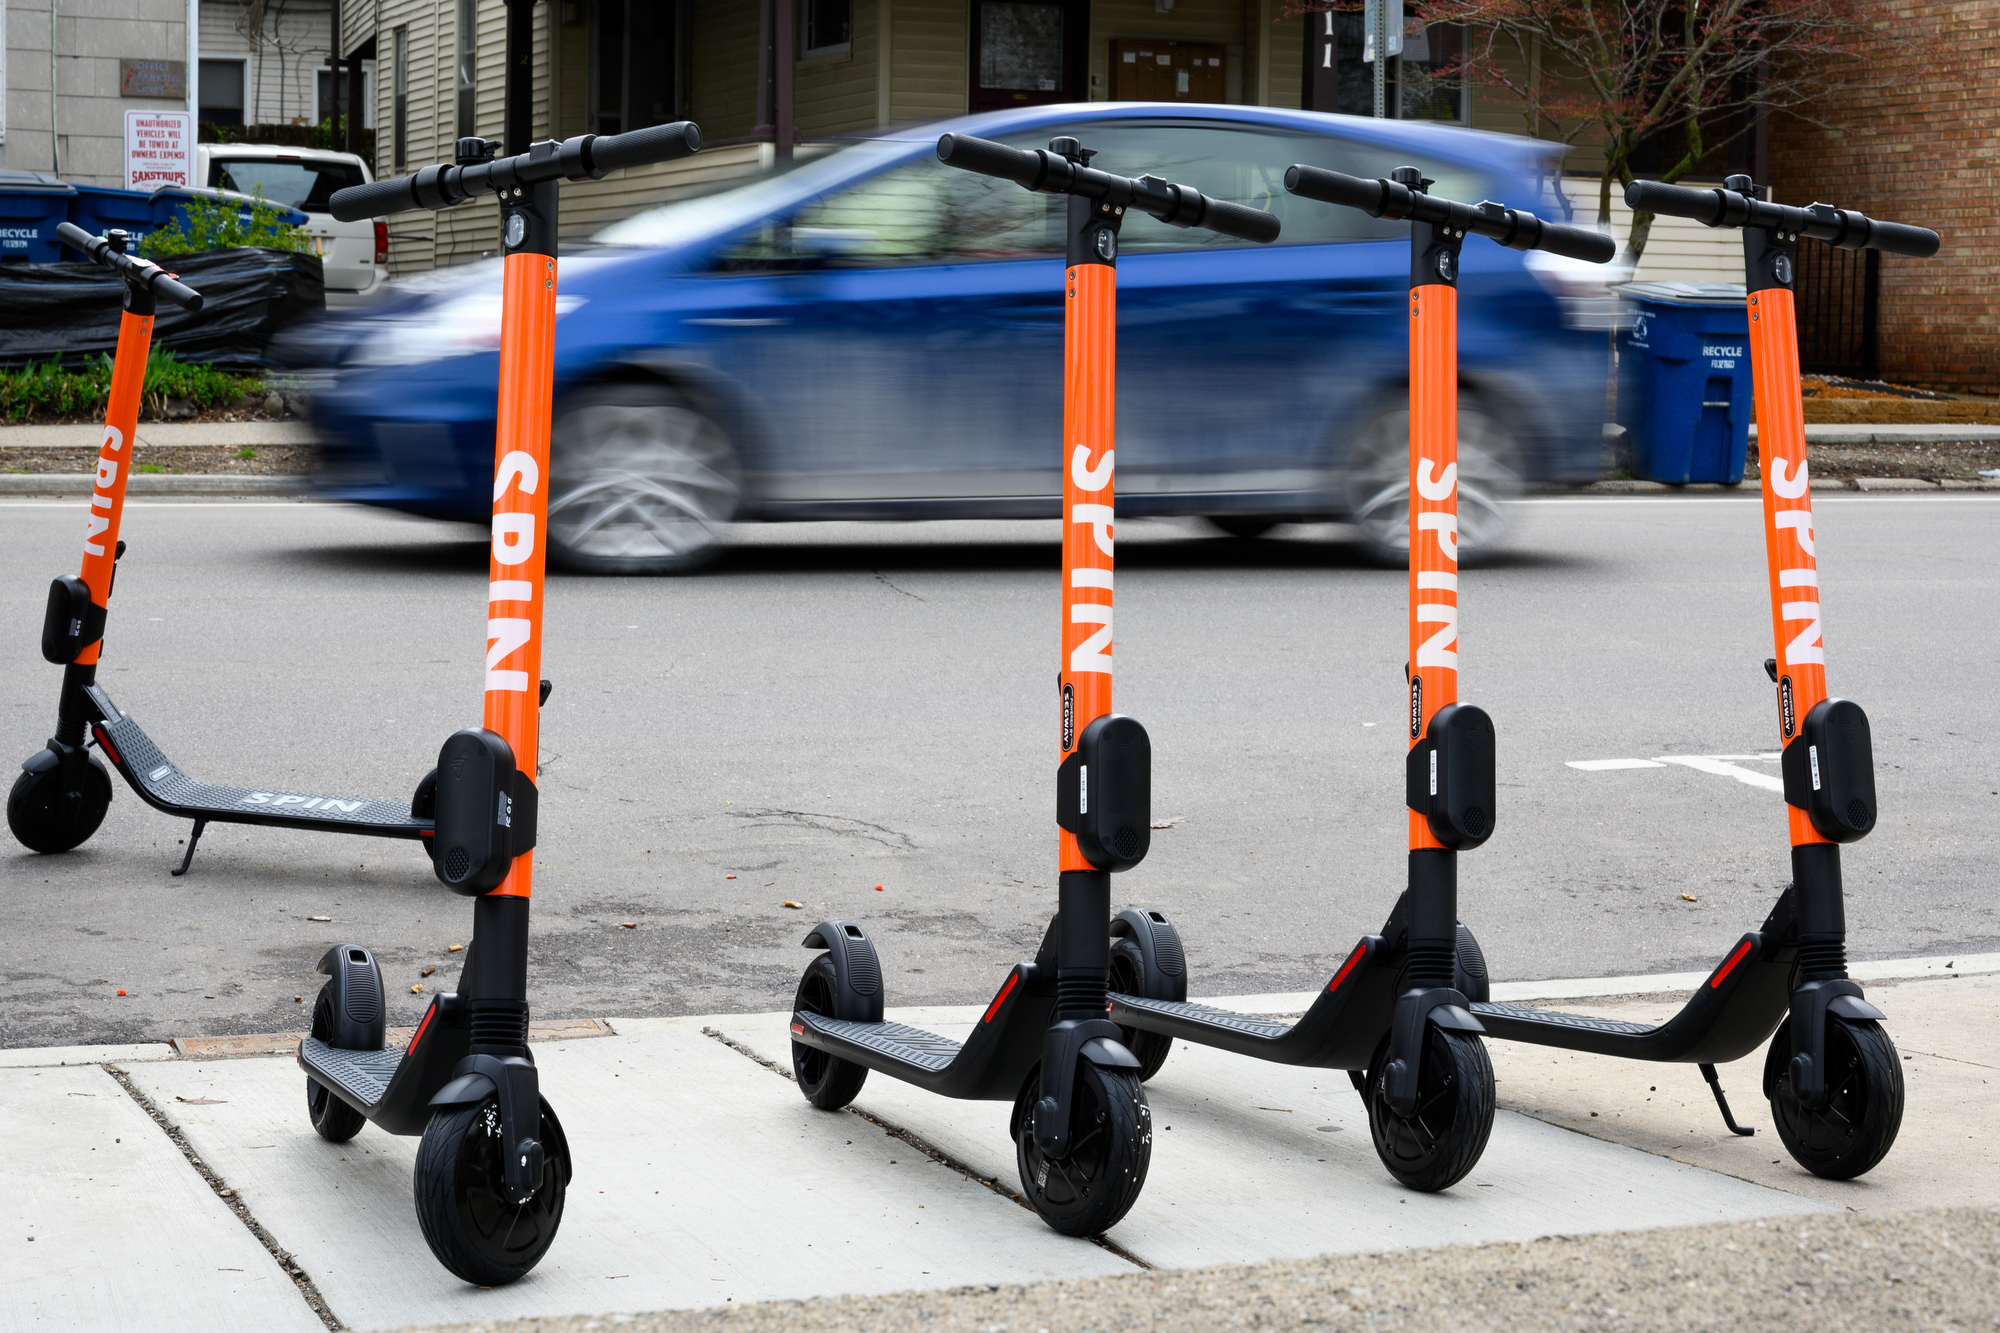 Spin to deploy scooter charging stations in Ann Arbor